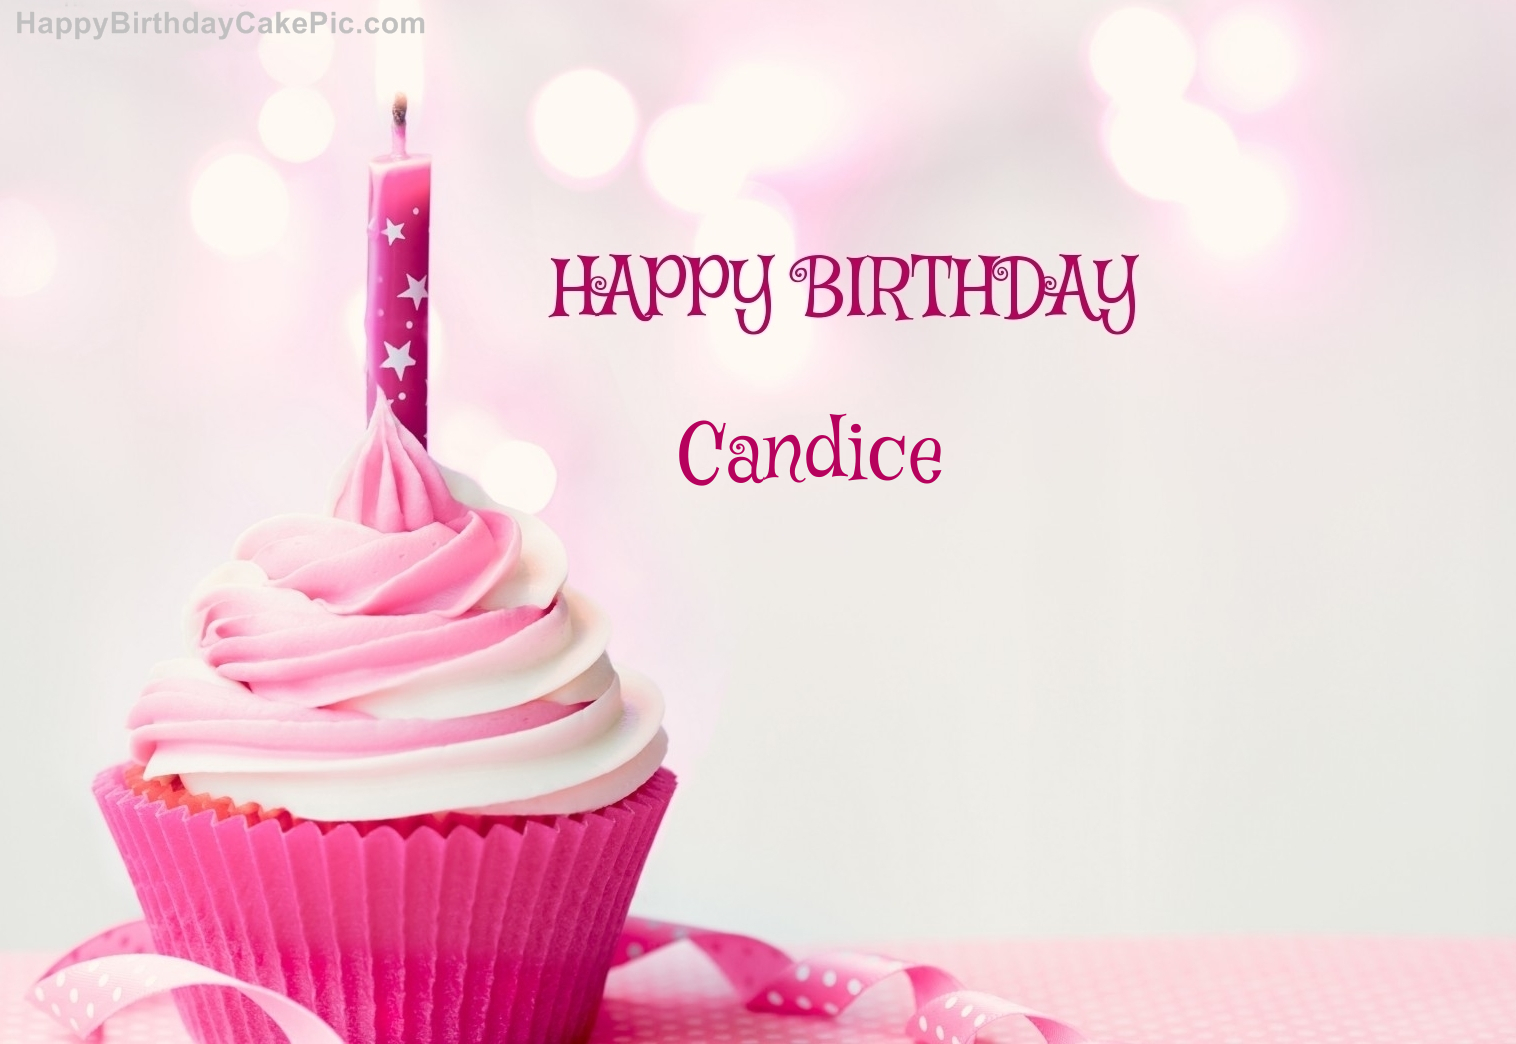 ️ Happy Birthday Cupcake Candle Pink Cake For Candice